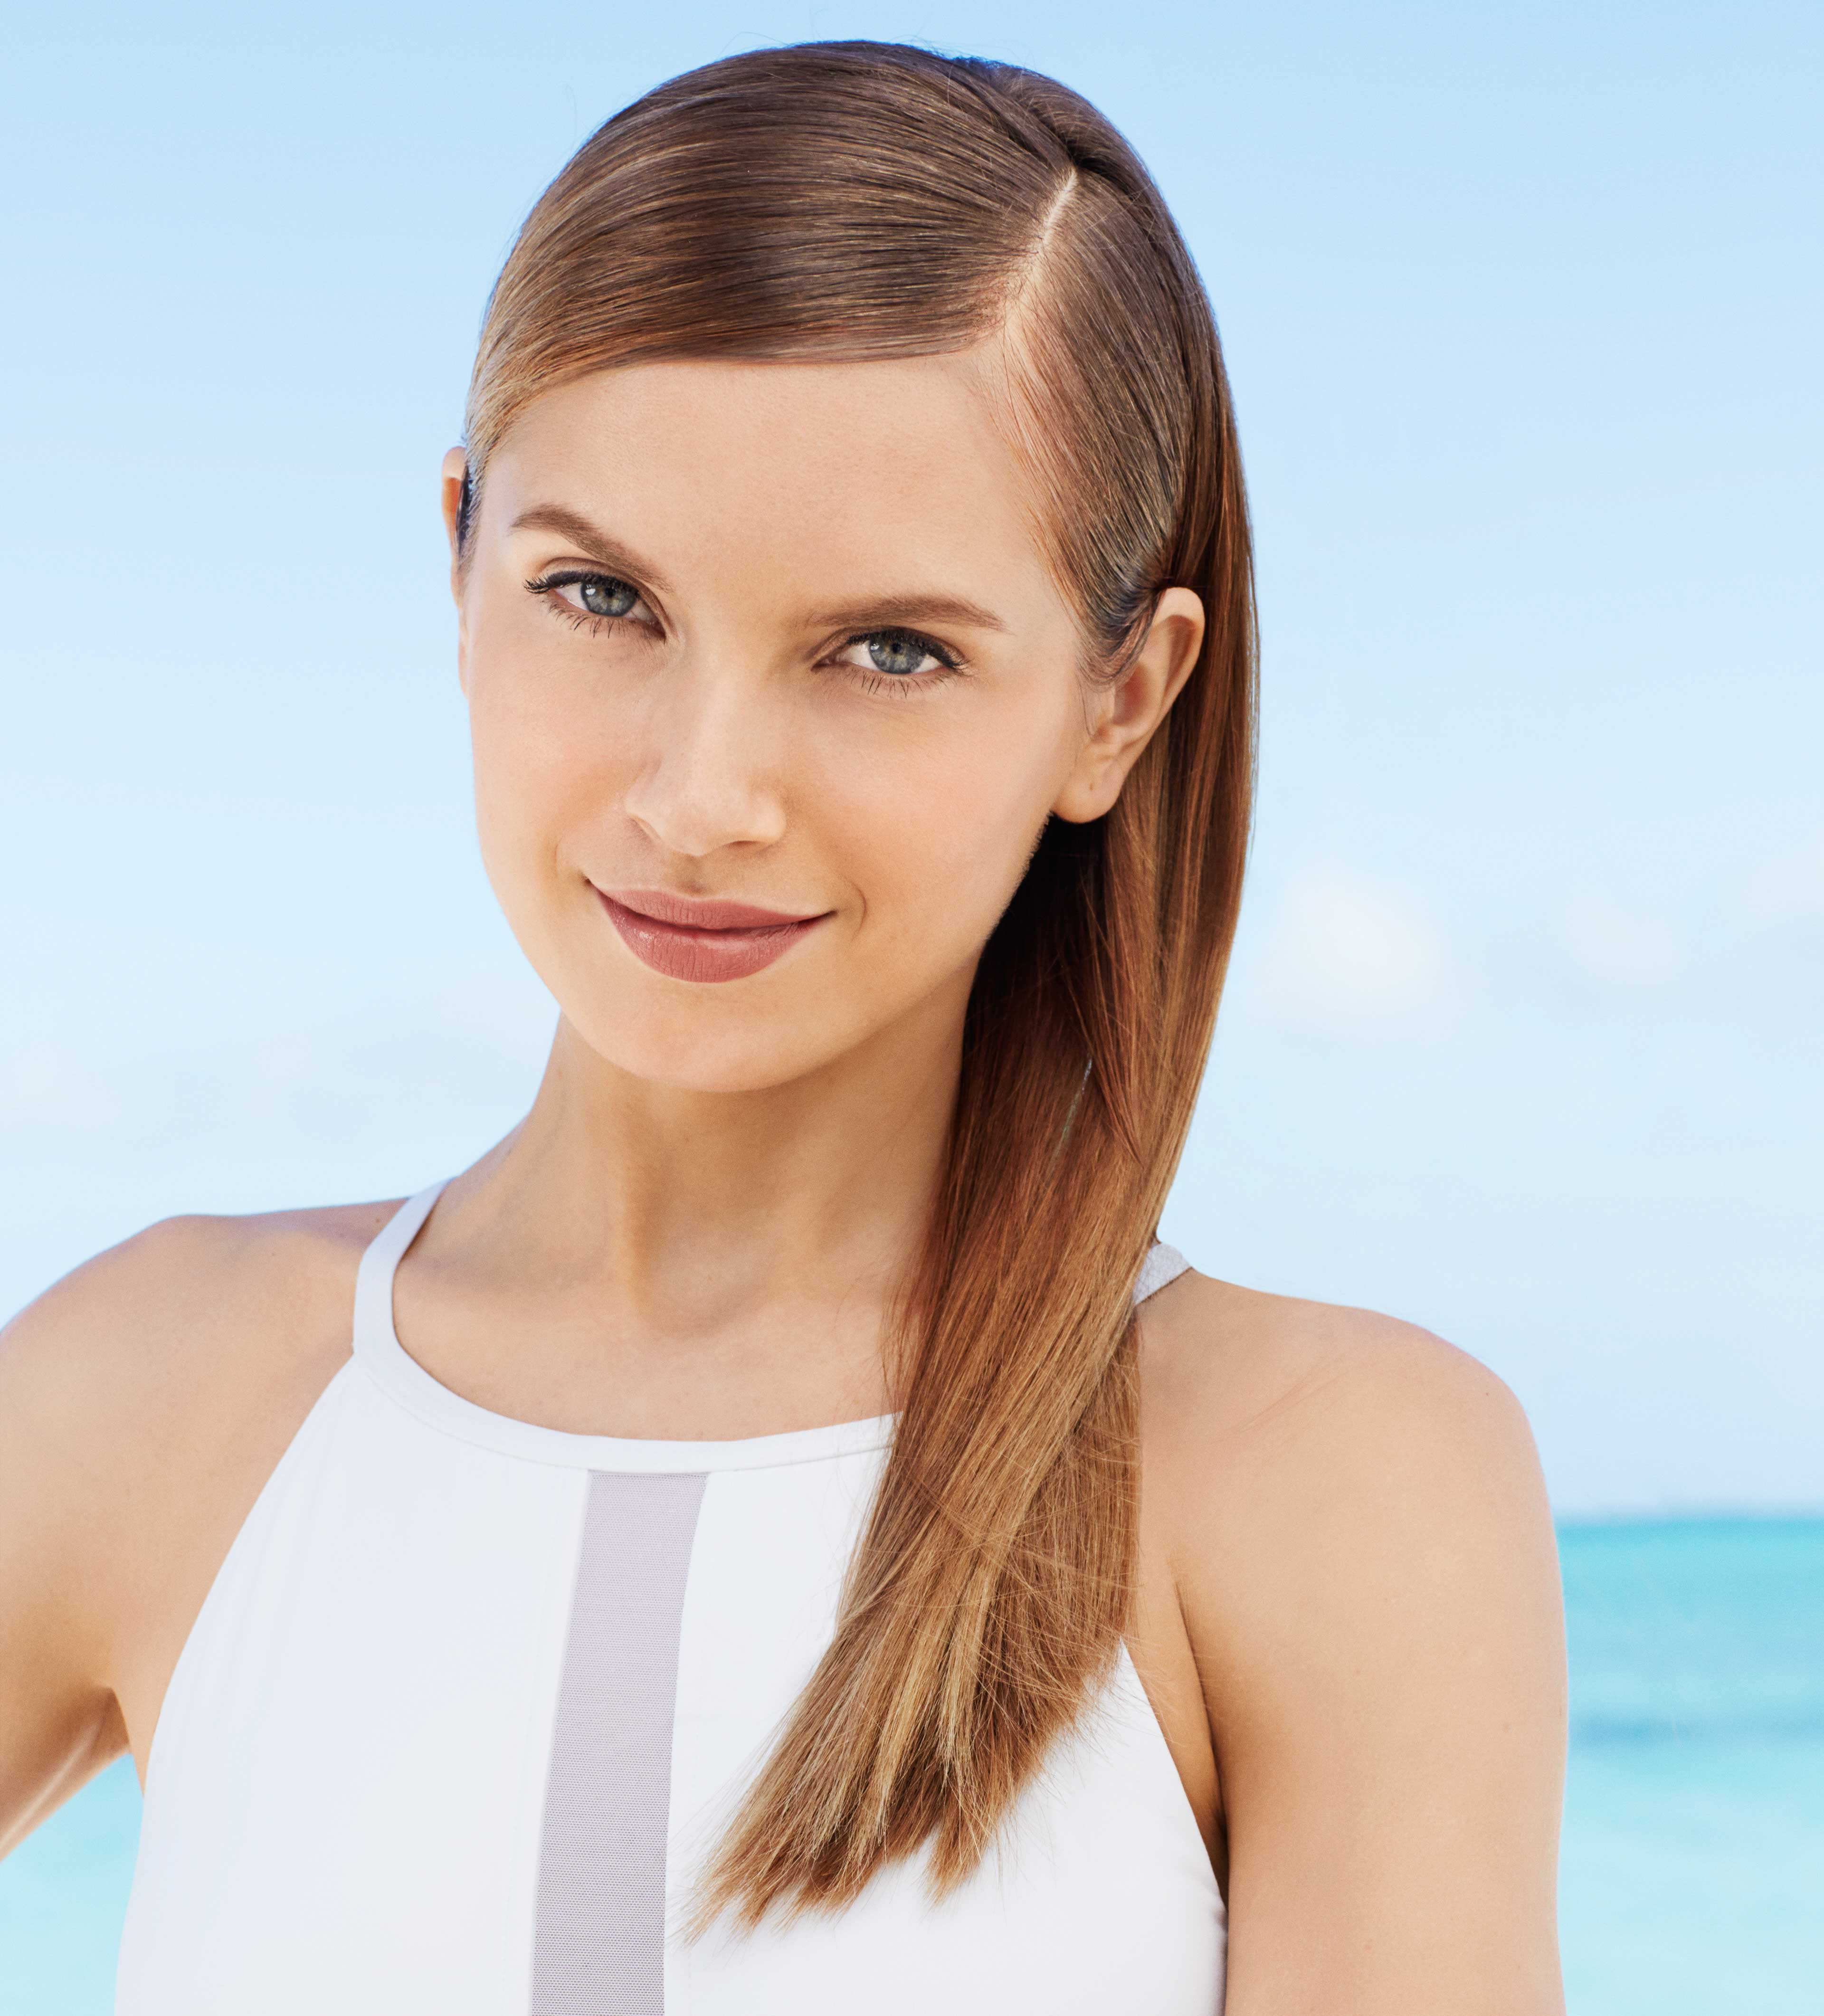 Beauty Tips for Summer Heat